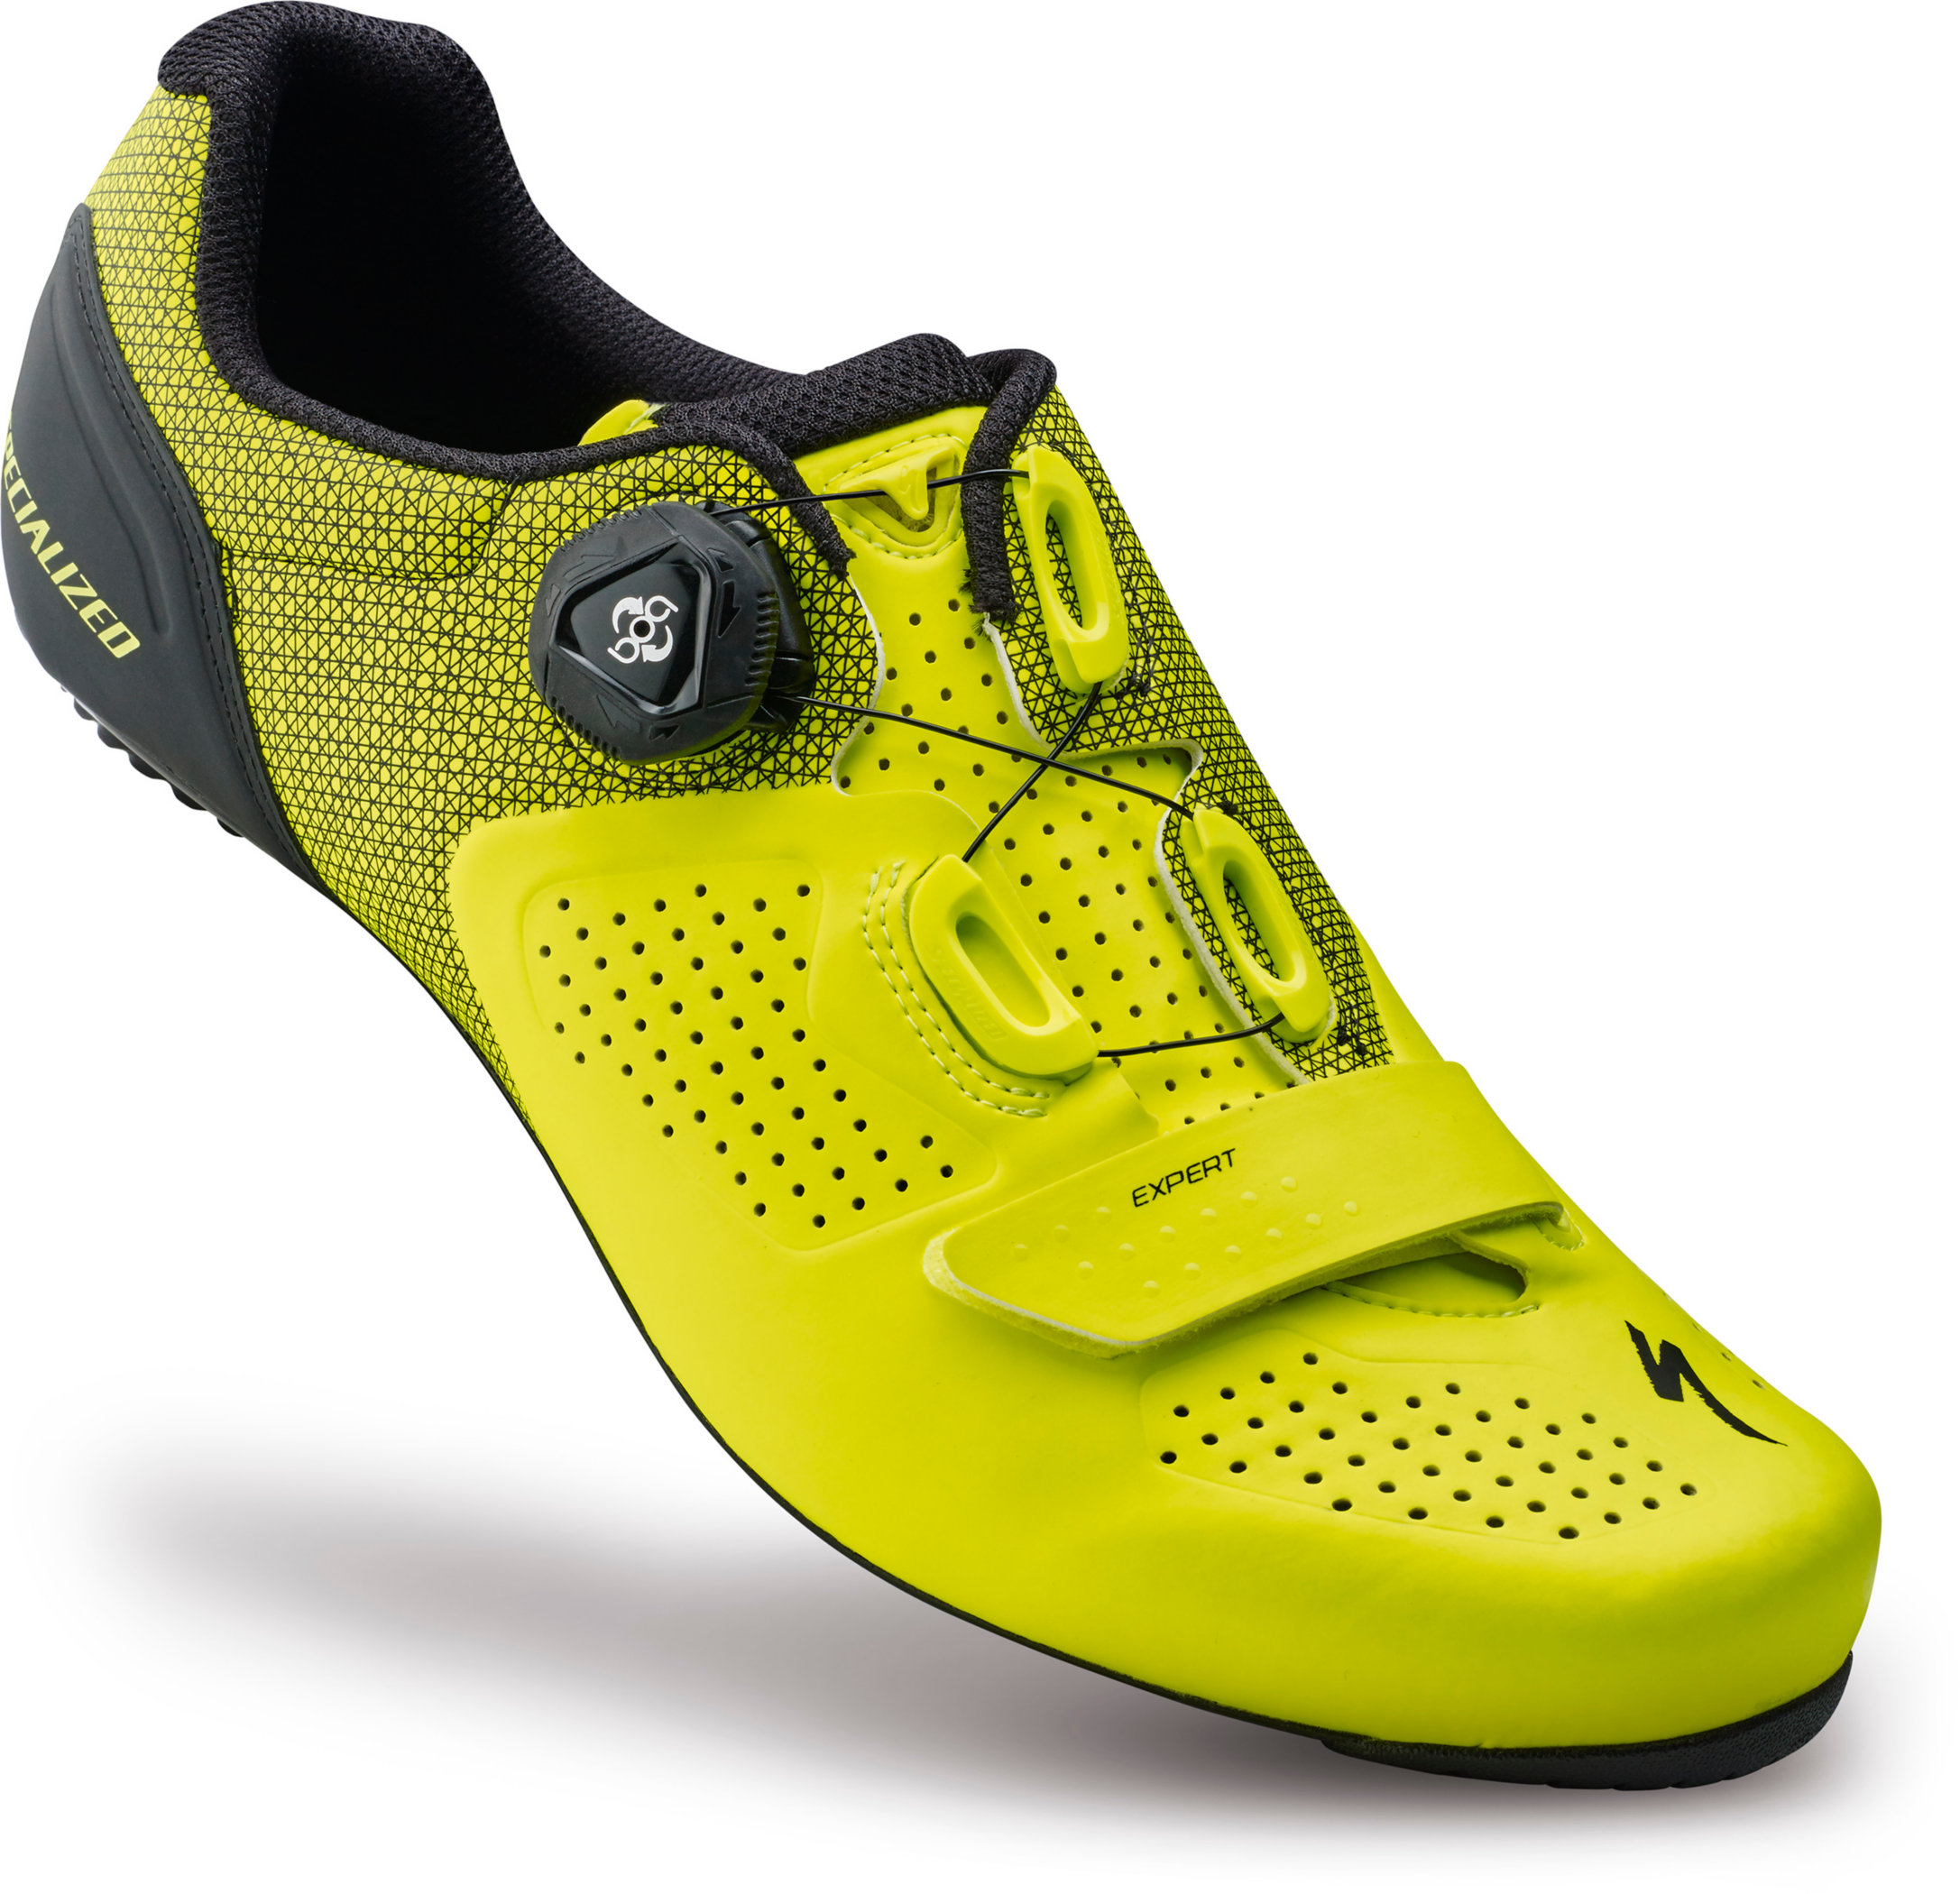 SPECIALIZED EXPERT RD SHOE NEON YEL 44/10.6 - Bikedreams & Dustbikes